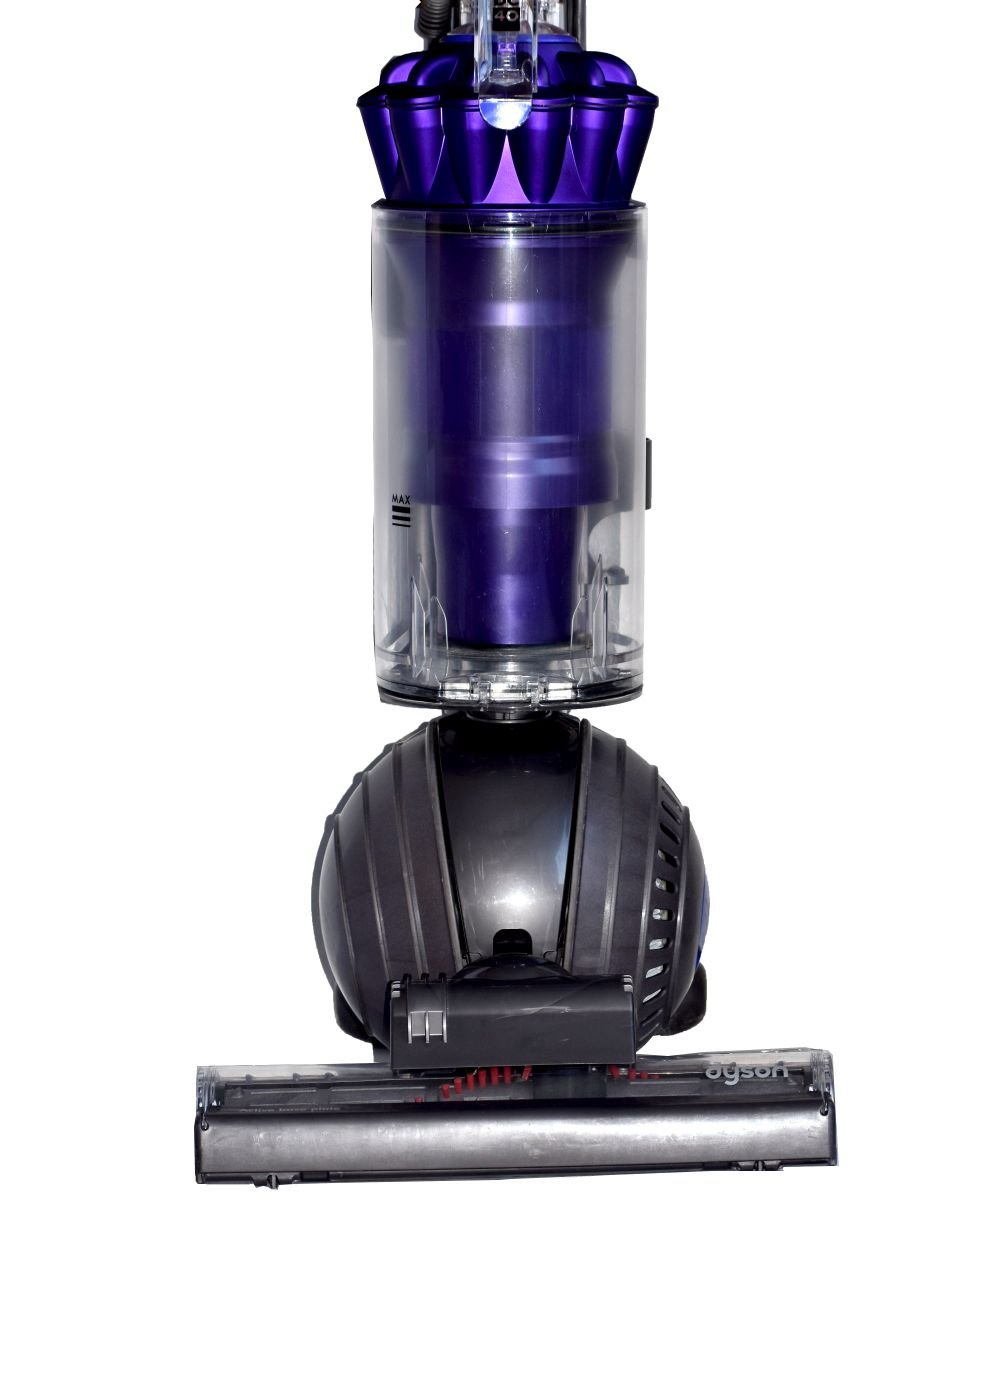 Amazon.com - Dyson Dc40 Animal Upright Best Rated Bagless Vacuum Cleaner -